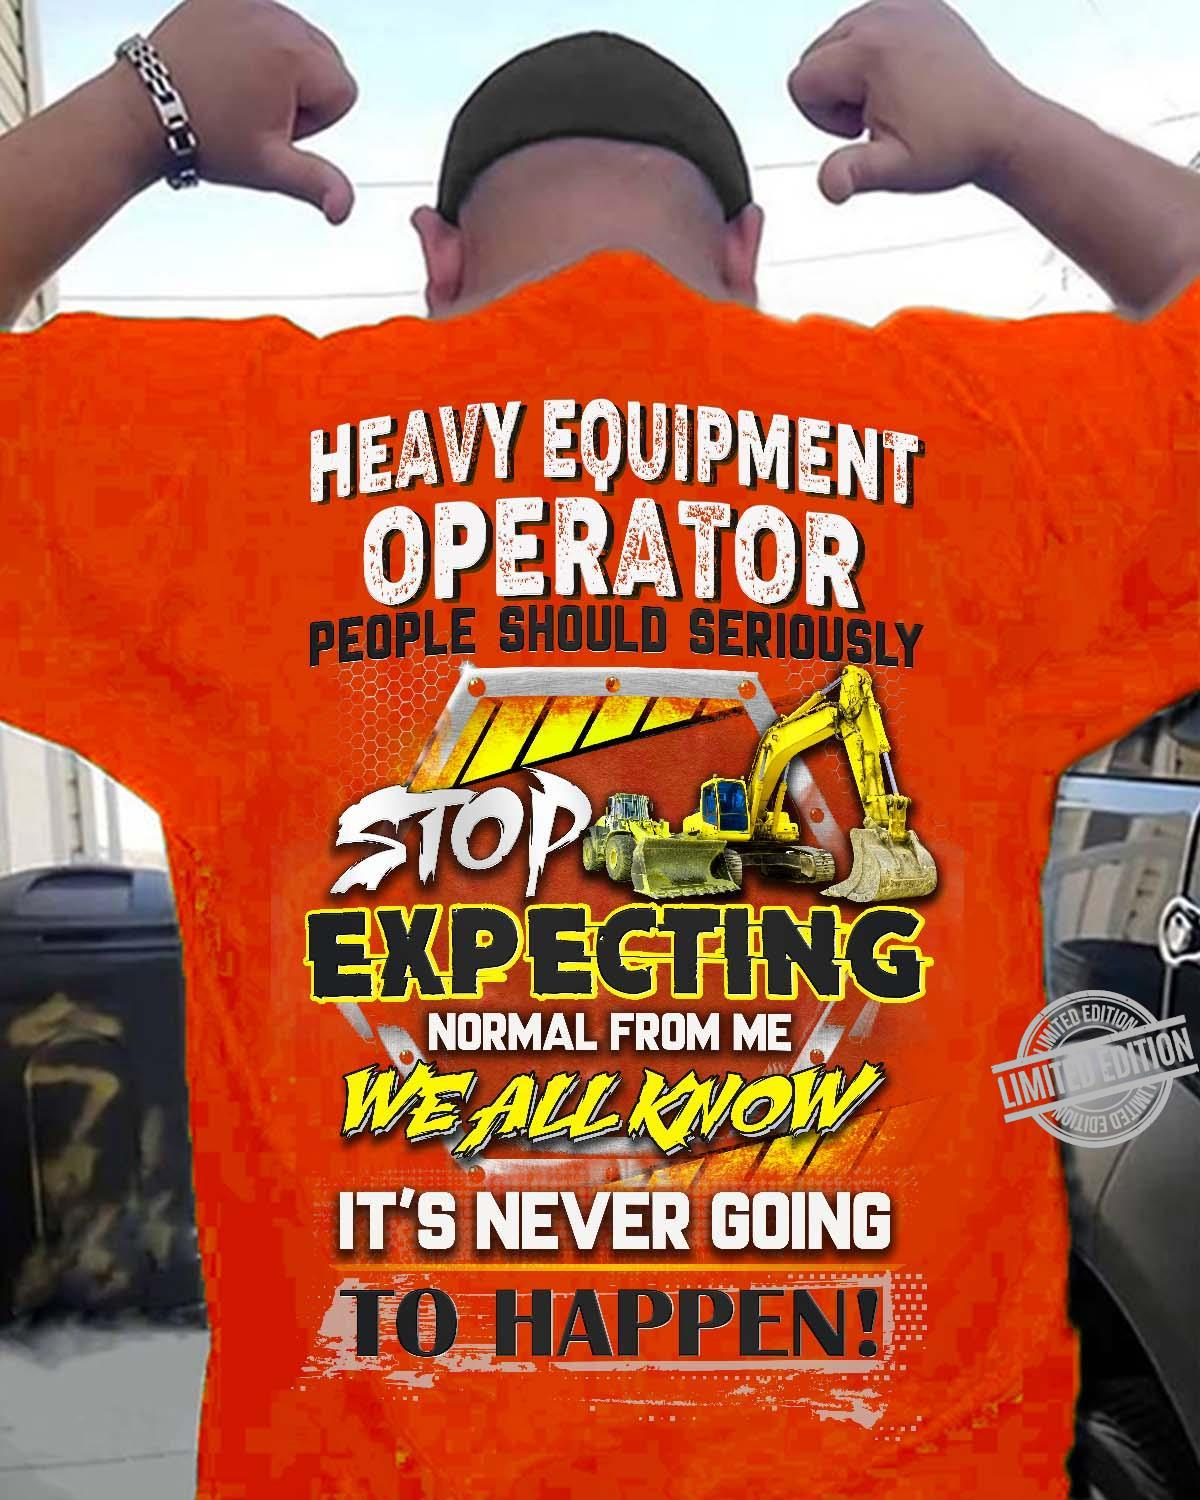 Heavy Equipment Operator People Should Seriously Stop Expecting Normal From Me We All Know It's Never Going To Happen Shirt